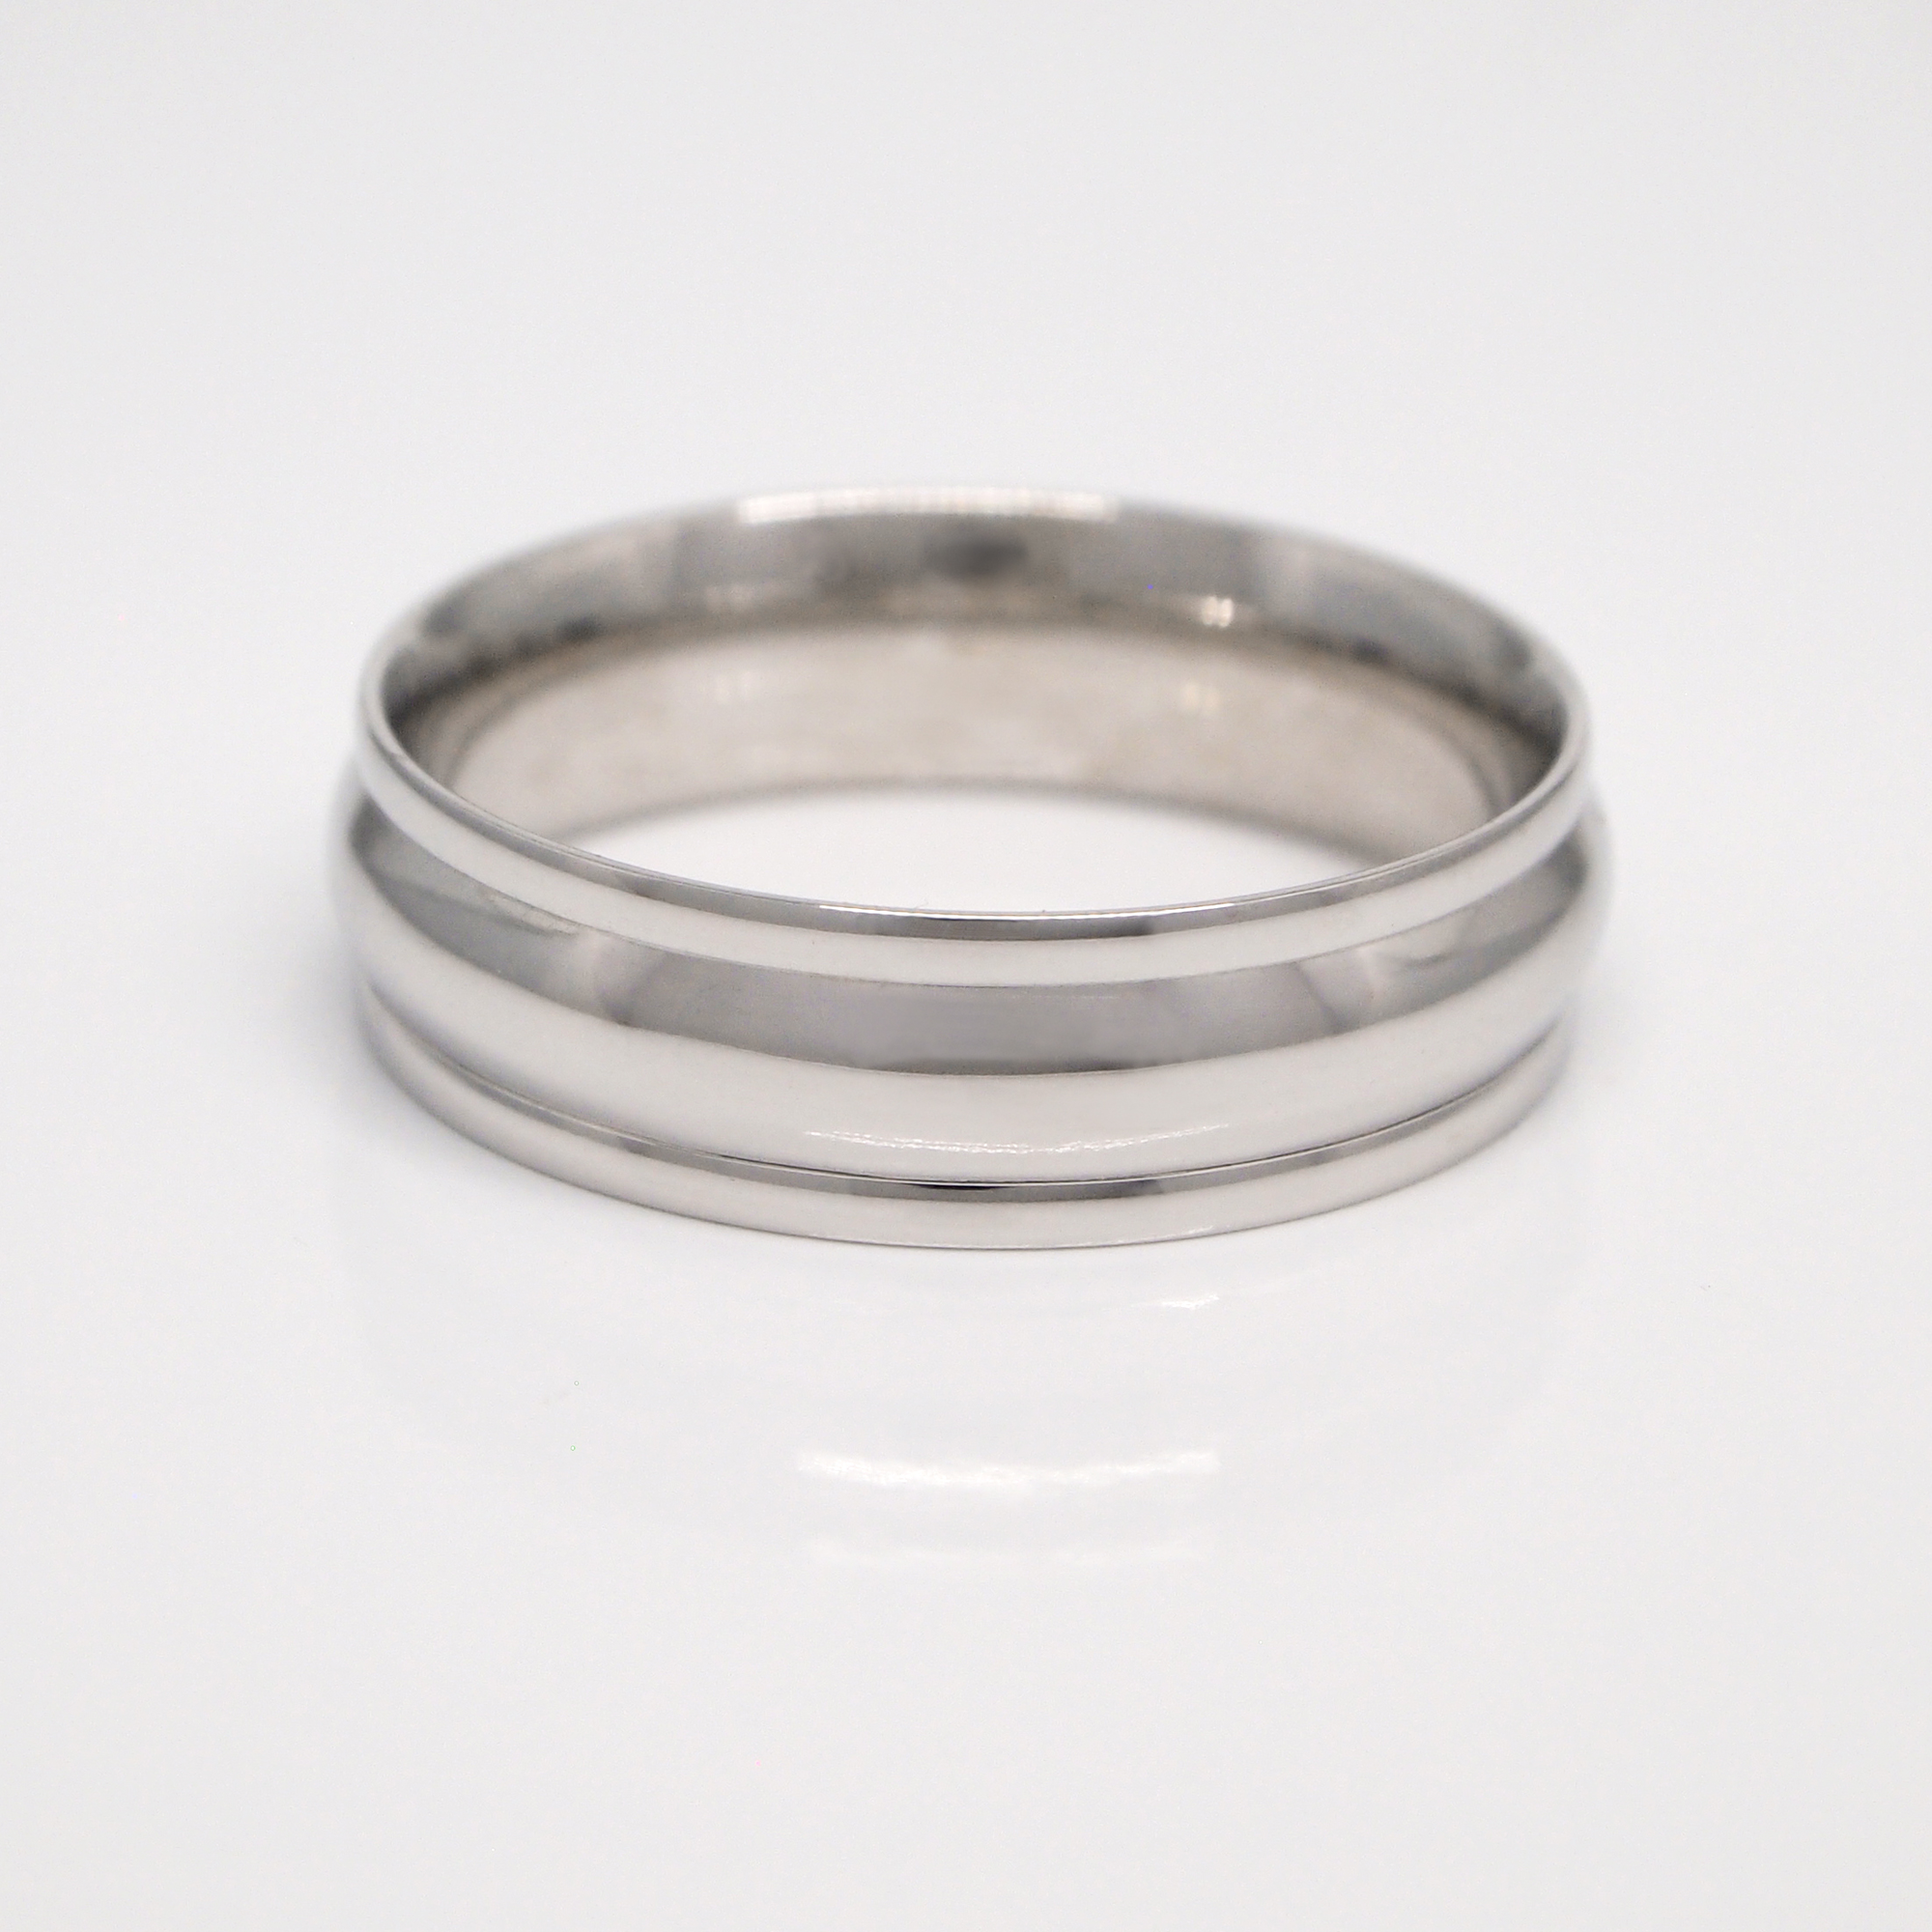 14K white gold 6mm men's wedding band featuring 3 sections and a high polish finish.